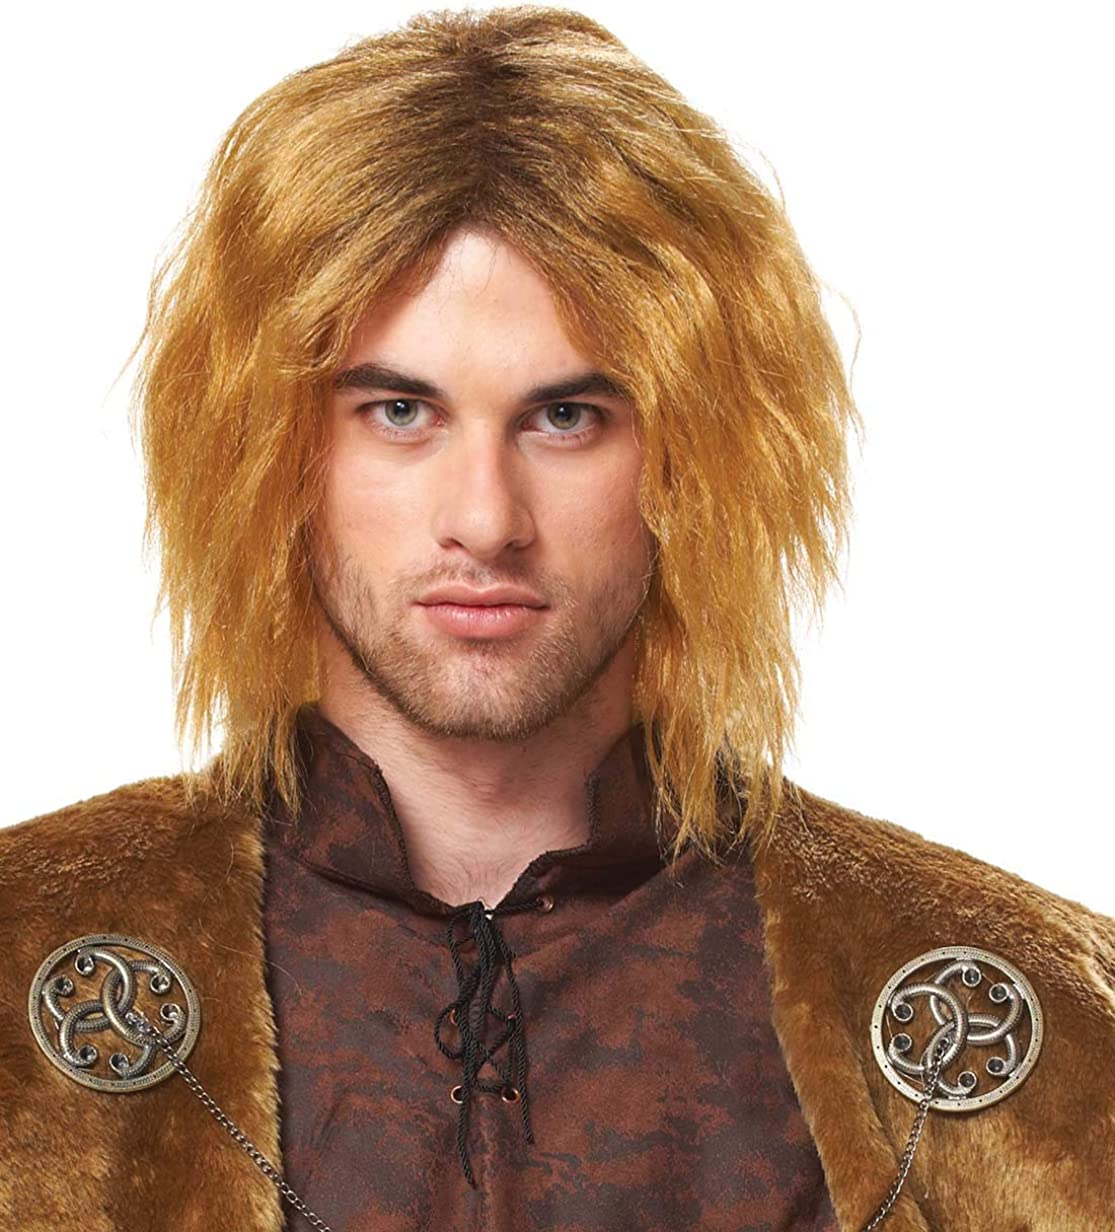 Max 65% OFF Fresno Mall Medieval King Wig Costume Accessory